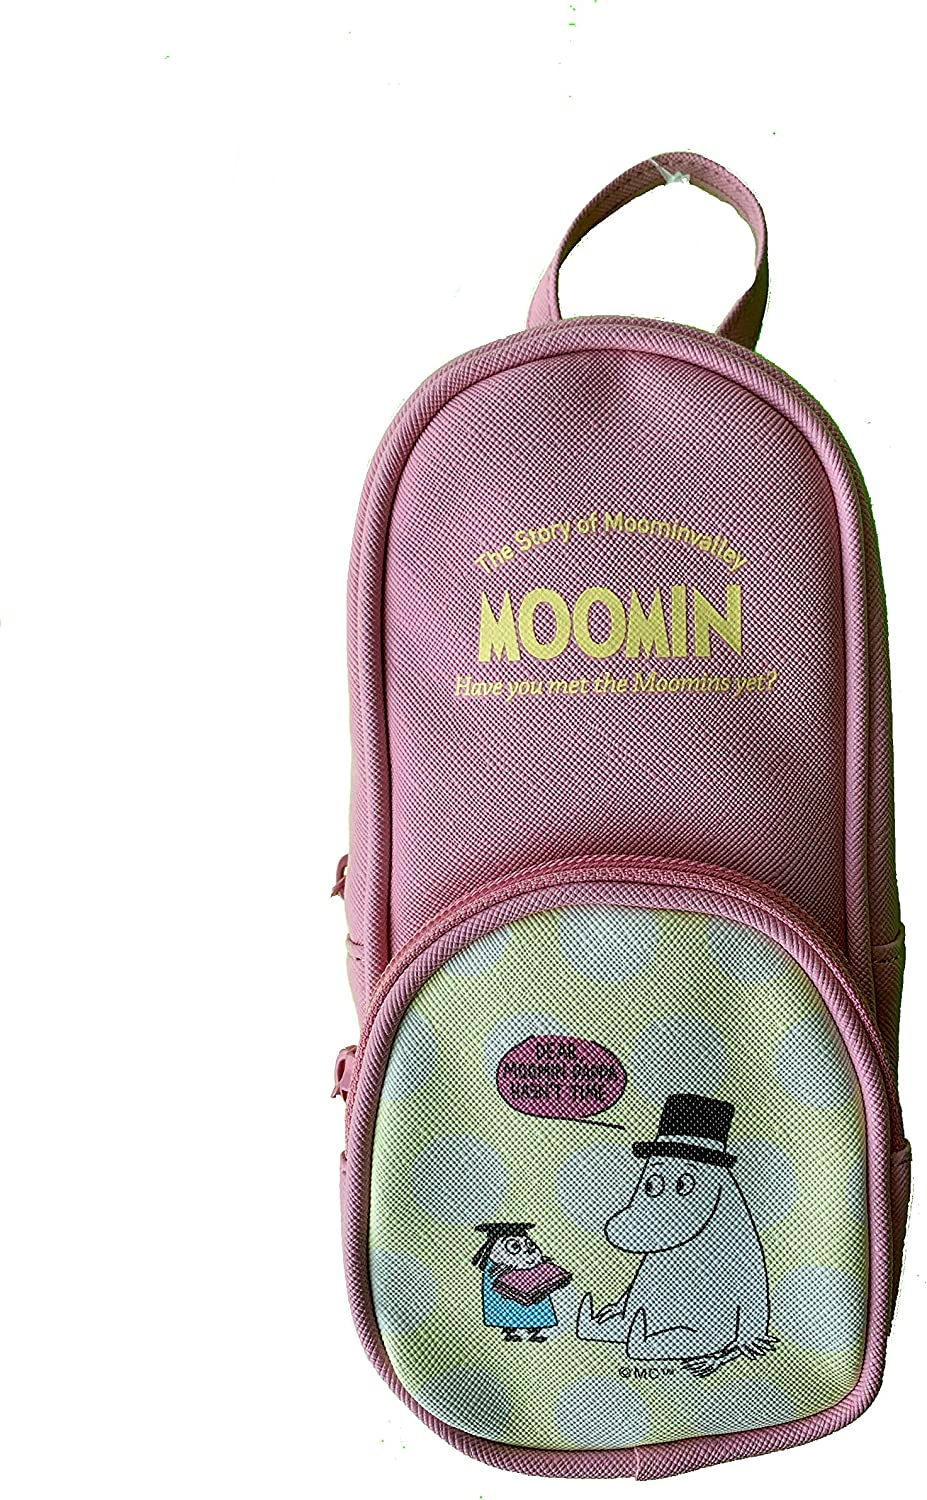 Moomins Backpack Bookbag | Small Book Bag Style Case Pouch Satchel Purse | Have You Met The Moomins (Pink)